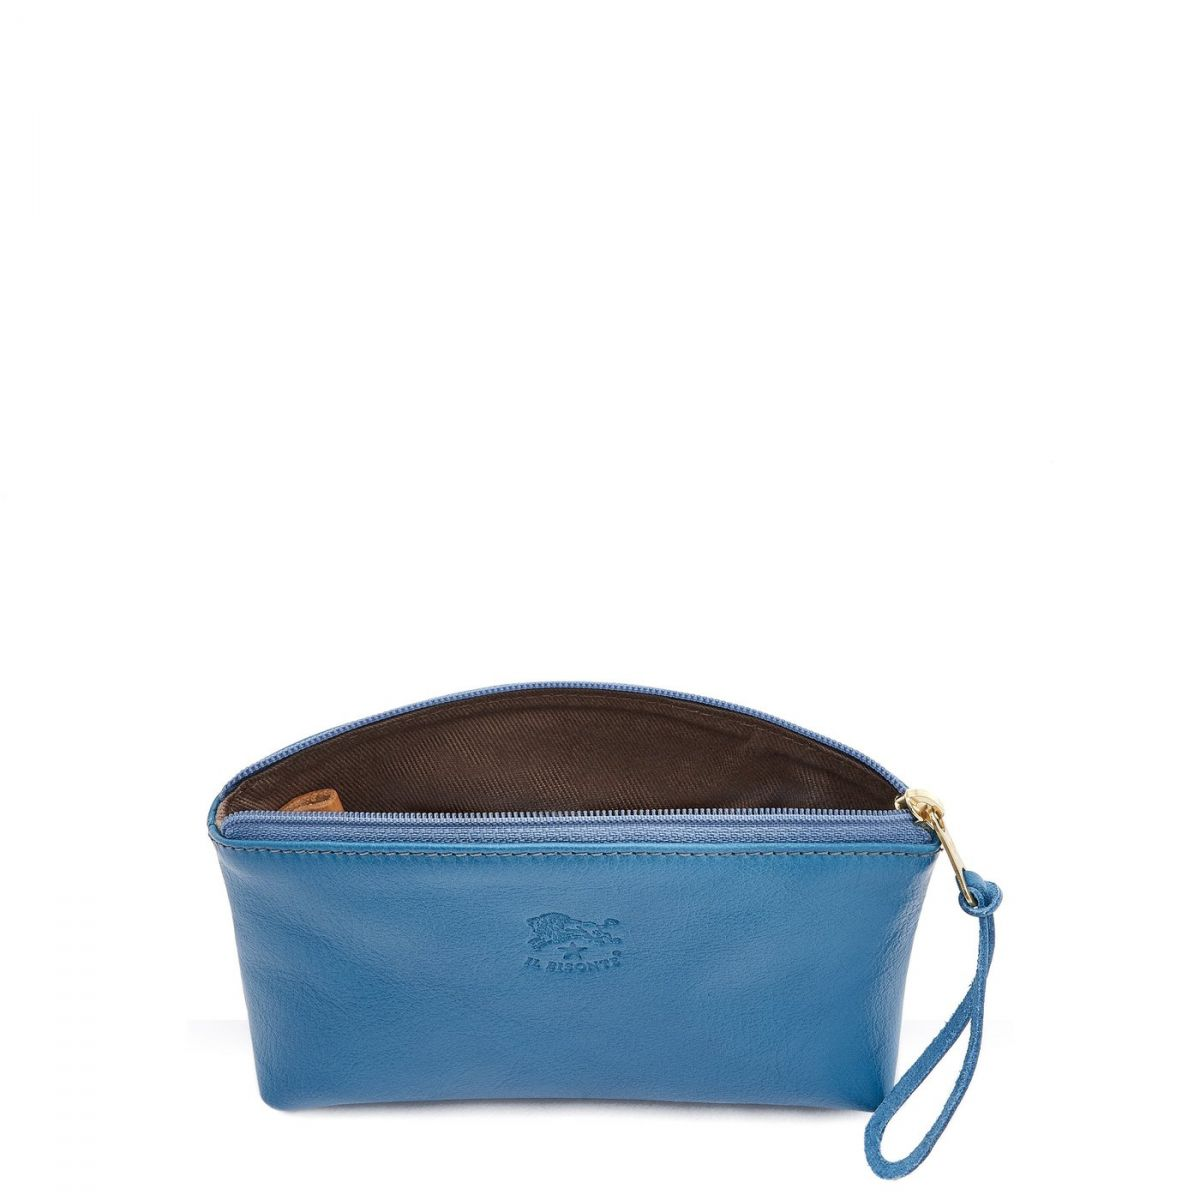 Women's Case in Cowhide Leather color Blue Teal - SCA014 | Details